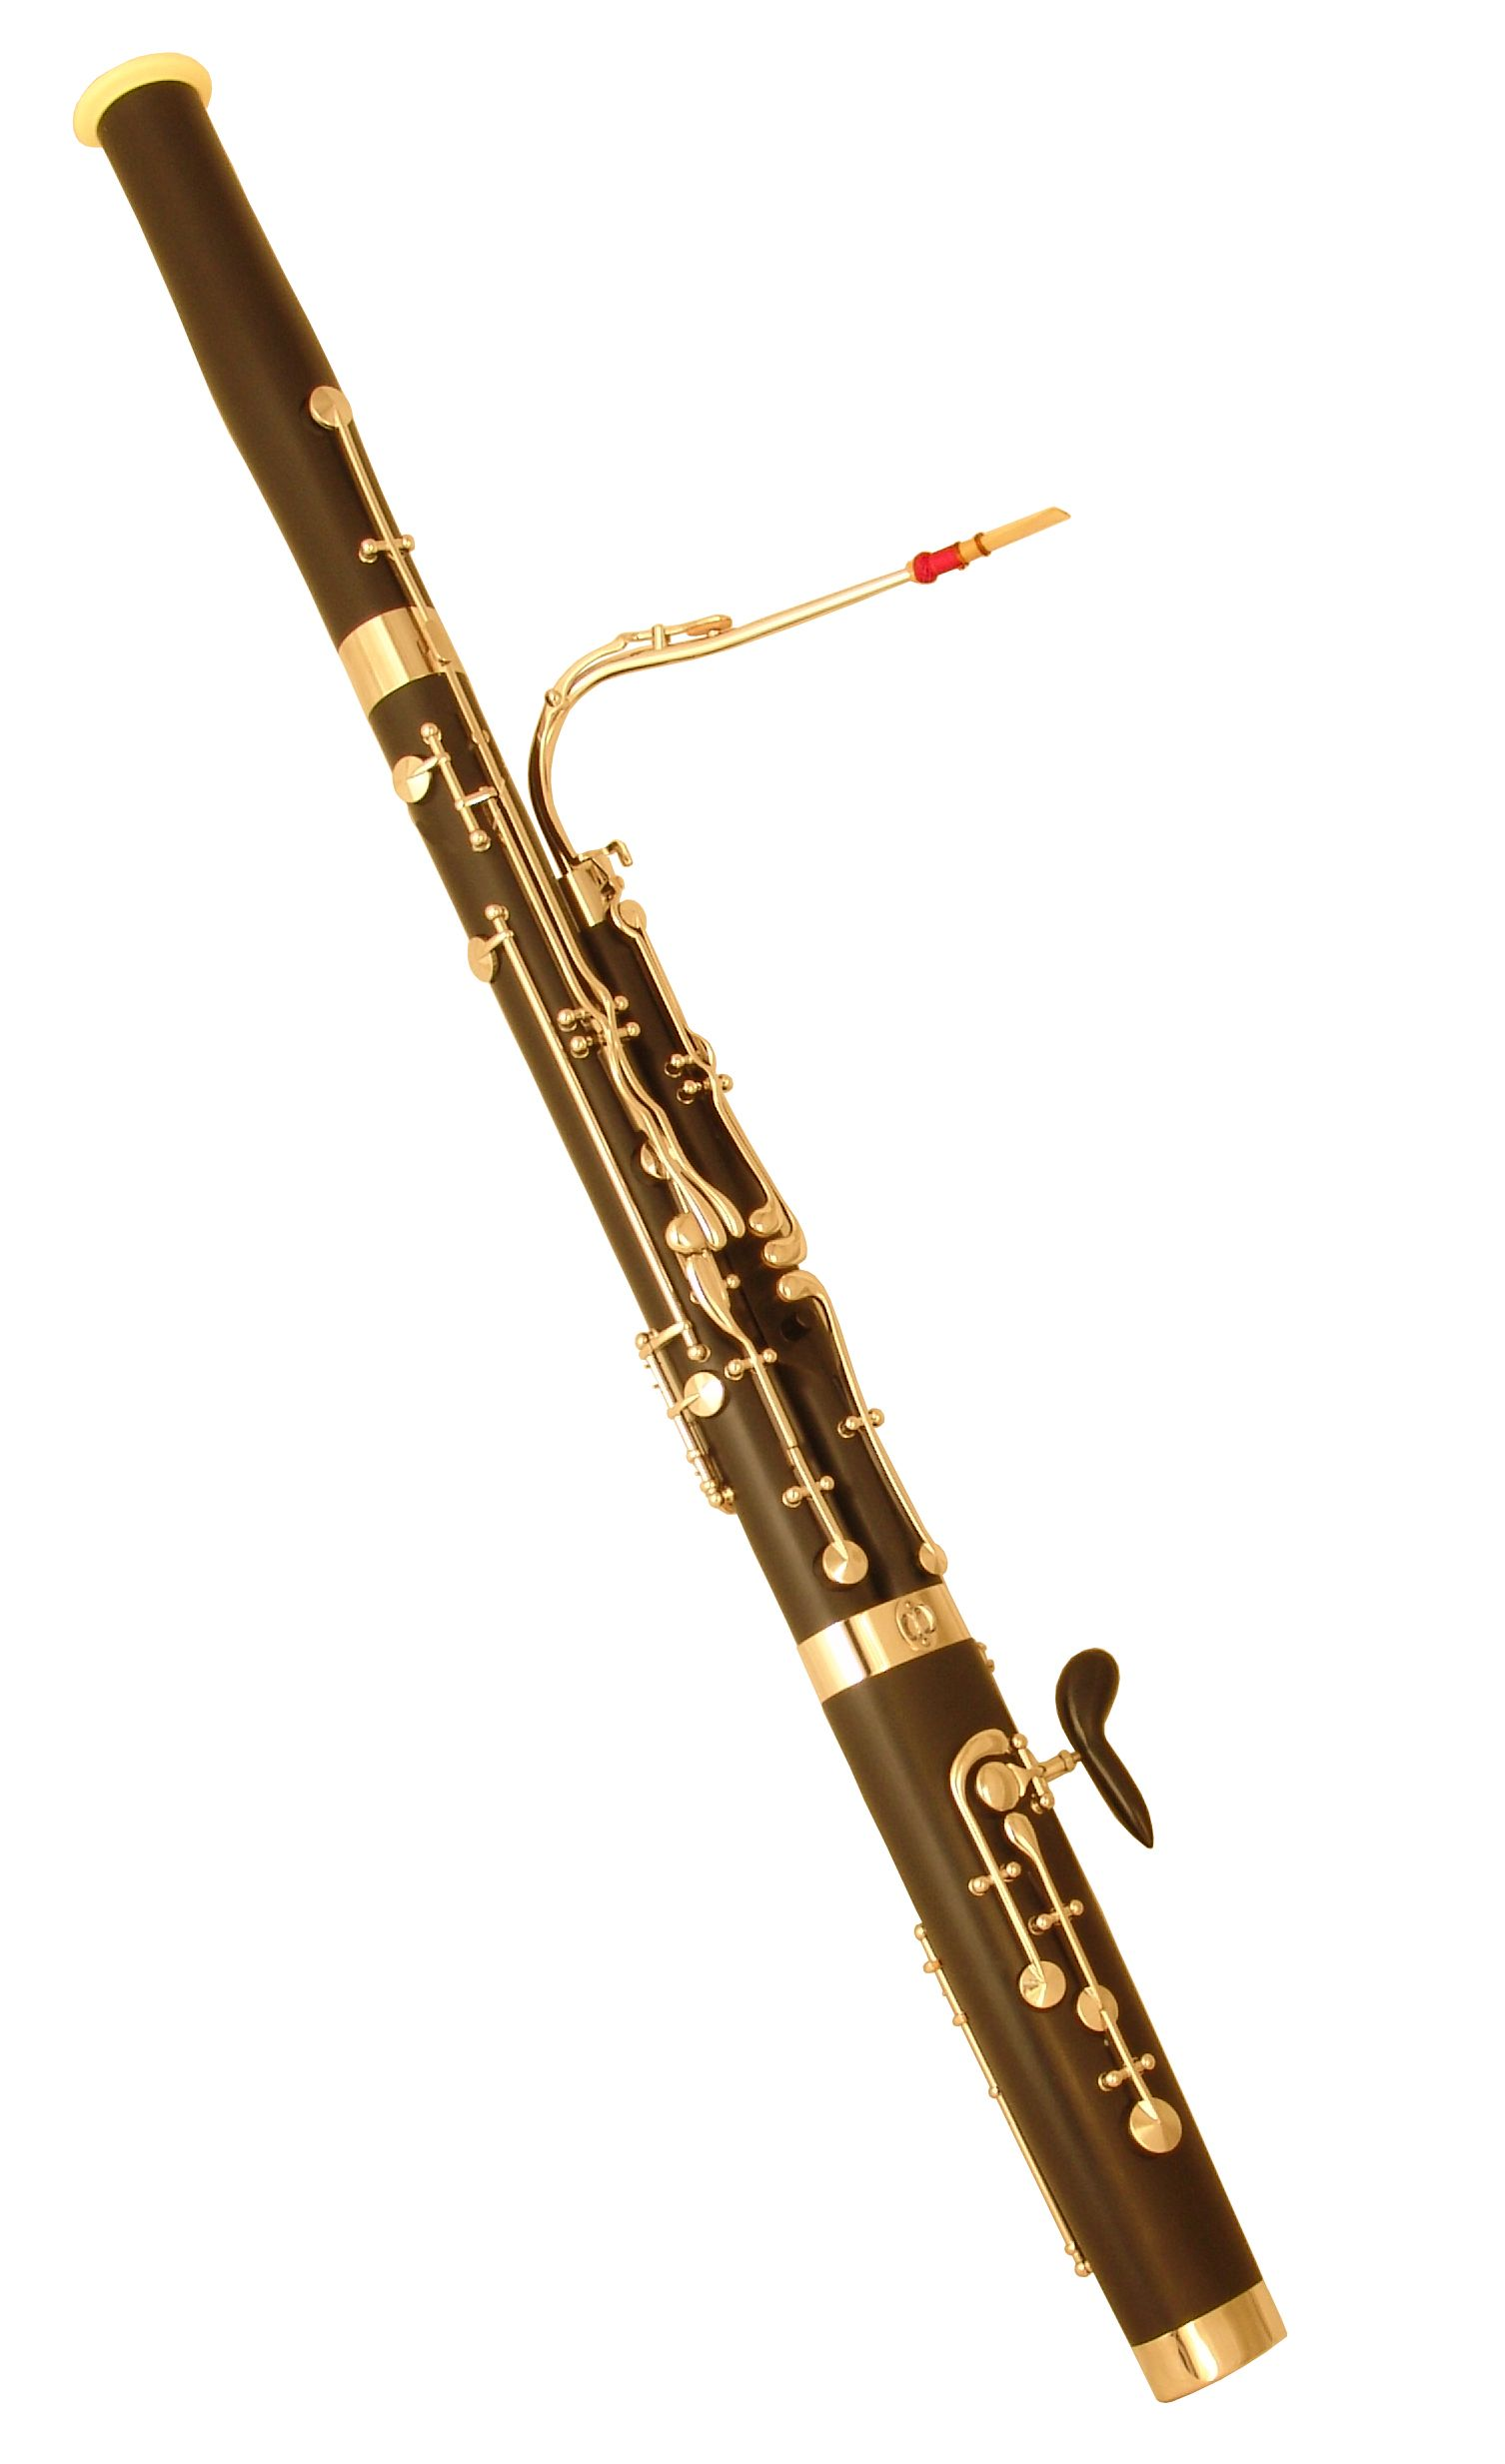 Bassoon (Woodwind family) figures prominently in ... Woodwind Band Instruments